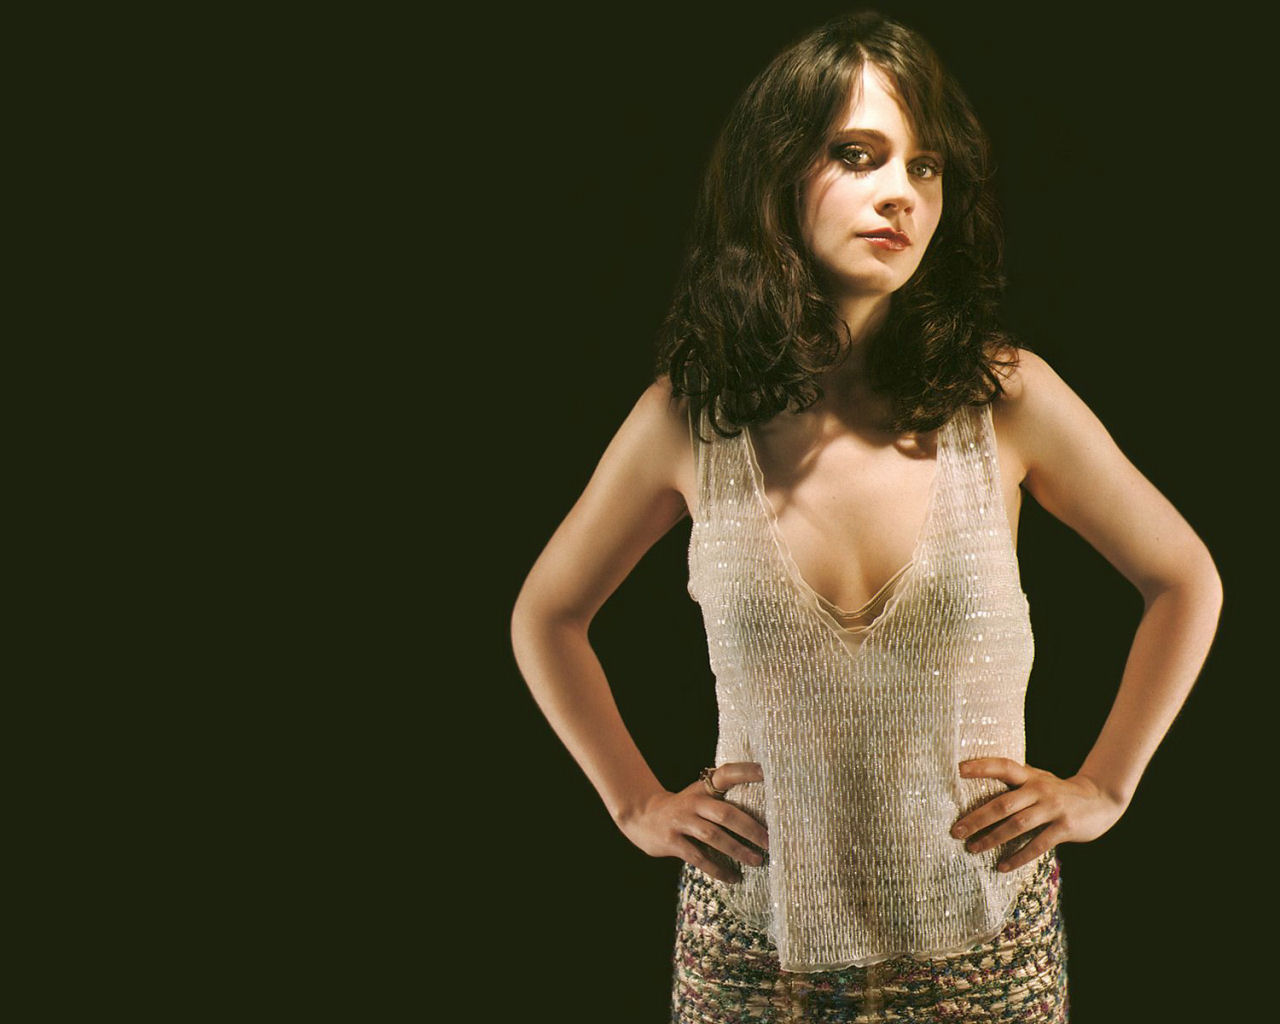 zooey deschanel see through top